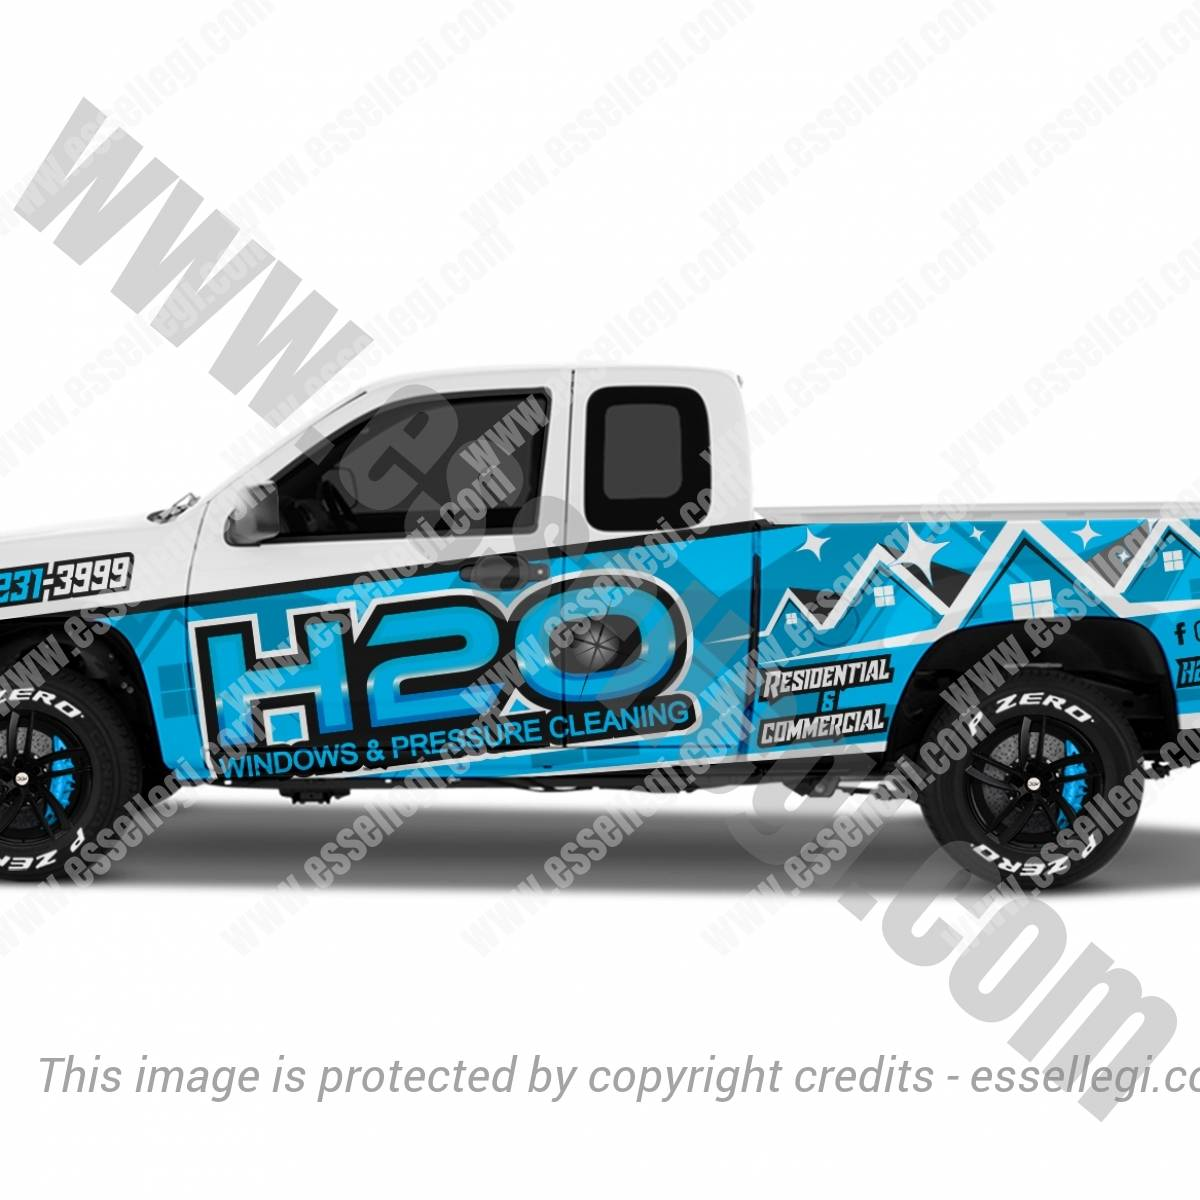 H2o WASHING | TRUCK WRAP DESIGN 🇺🇸